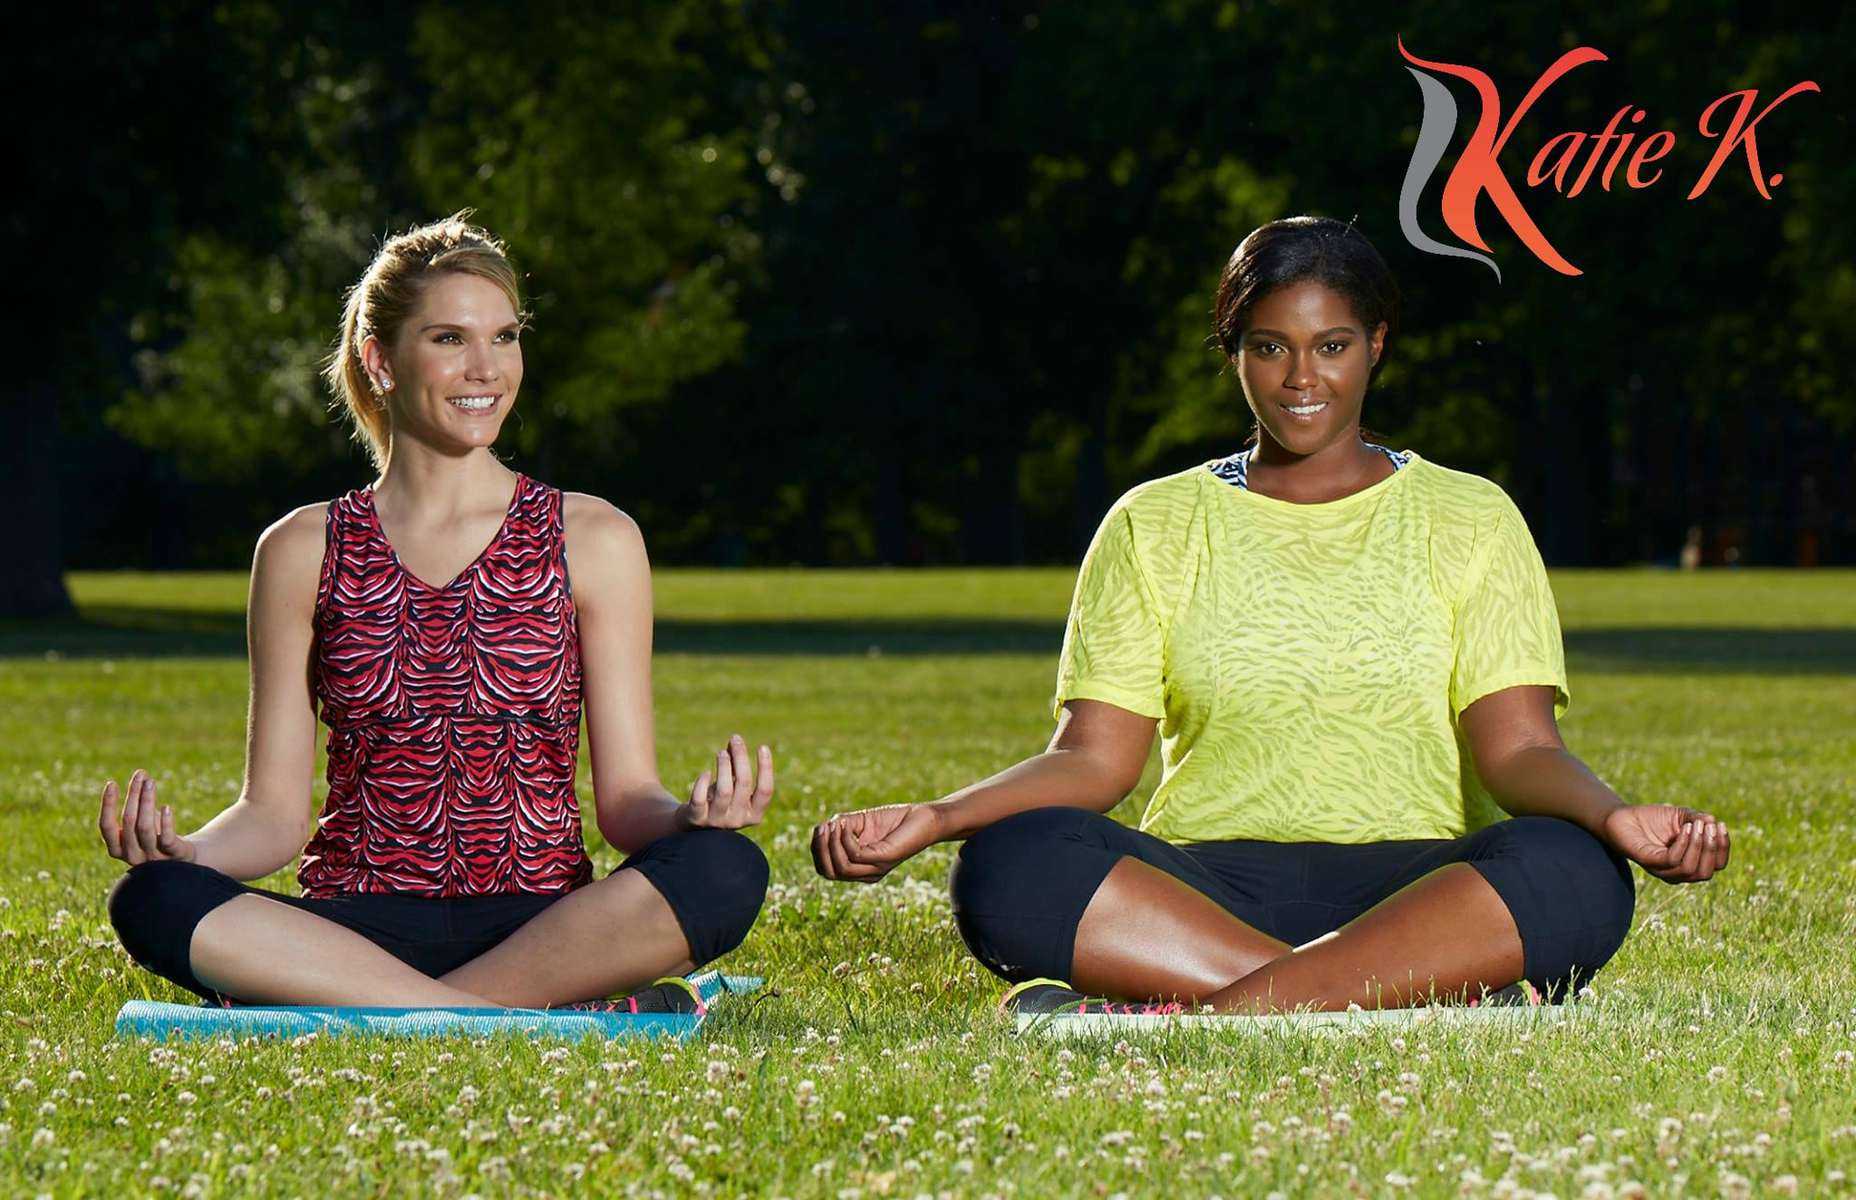 katie k active plus size activewear